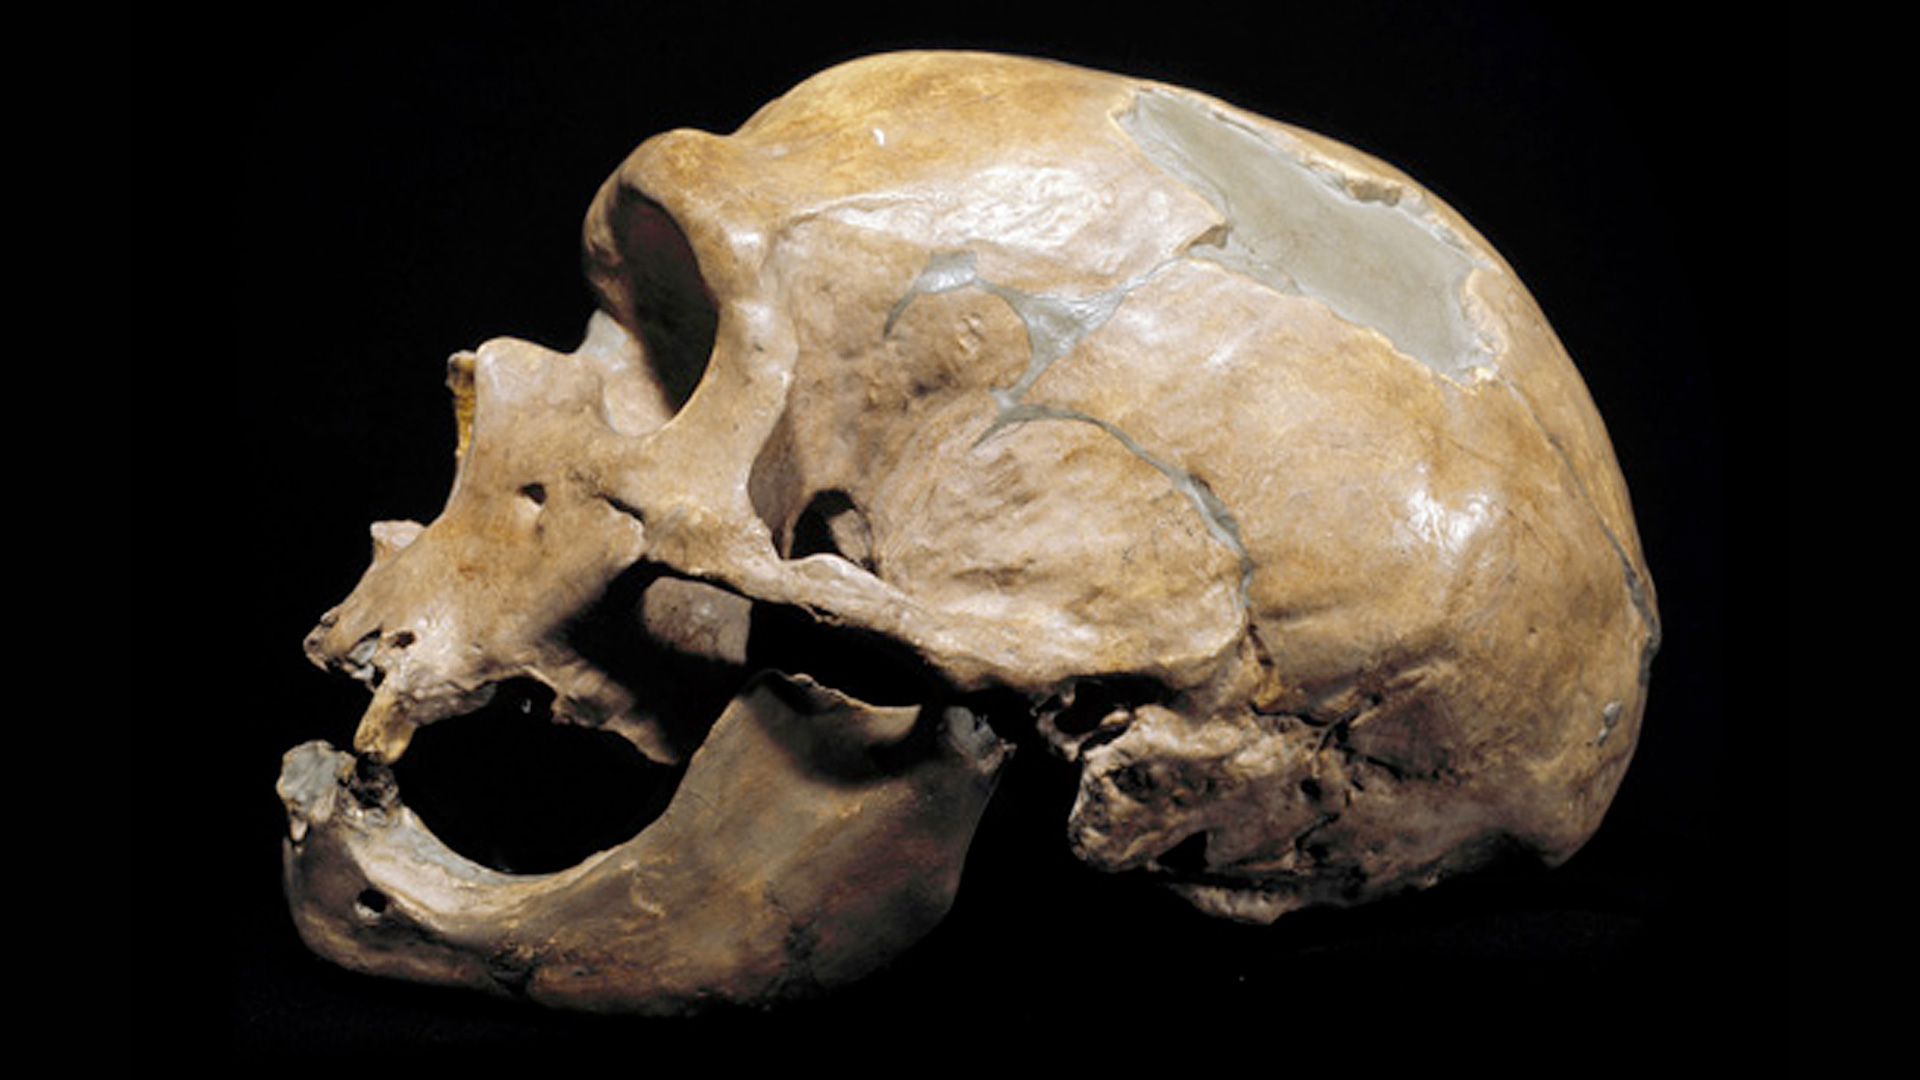 Are Neanderthals Human?